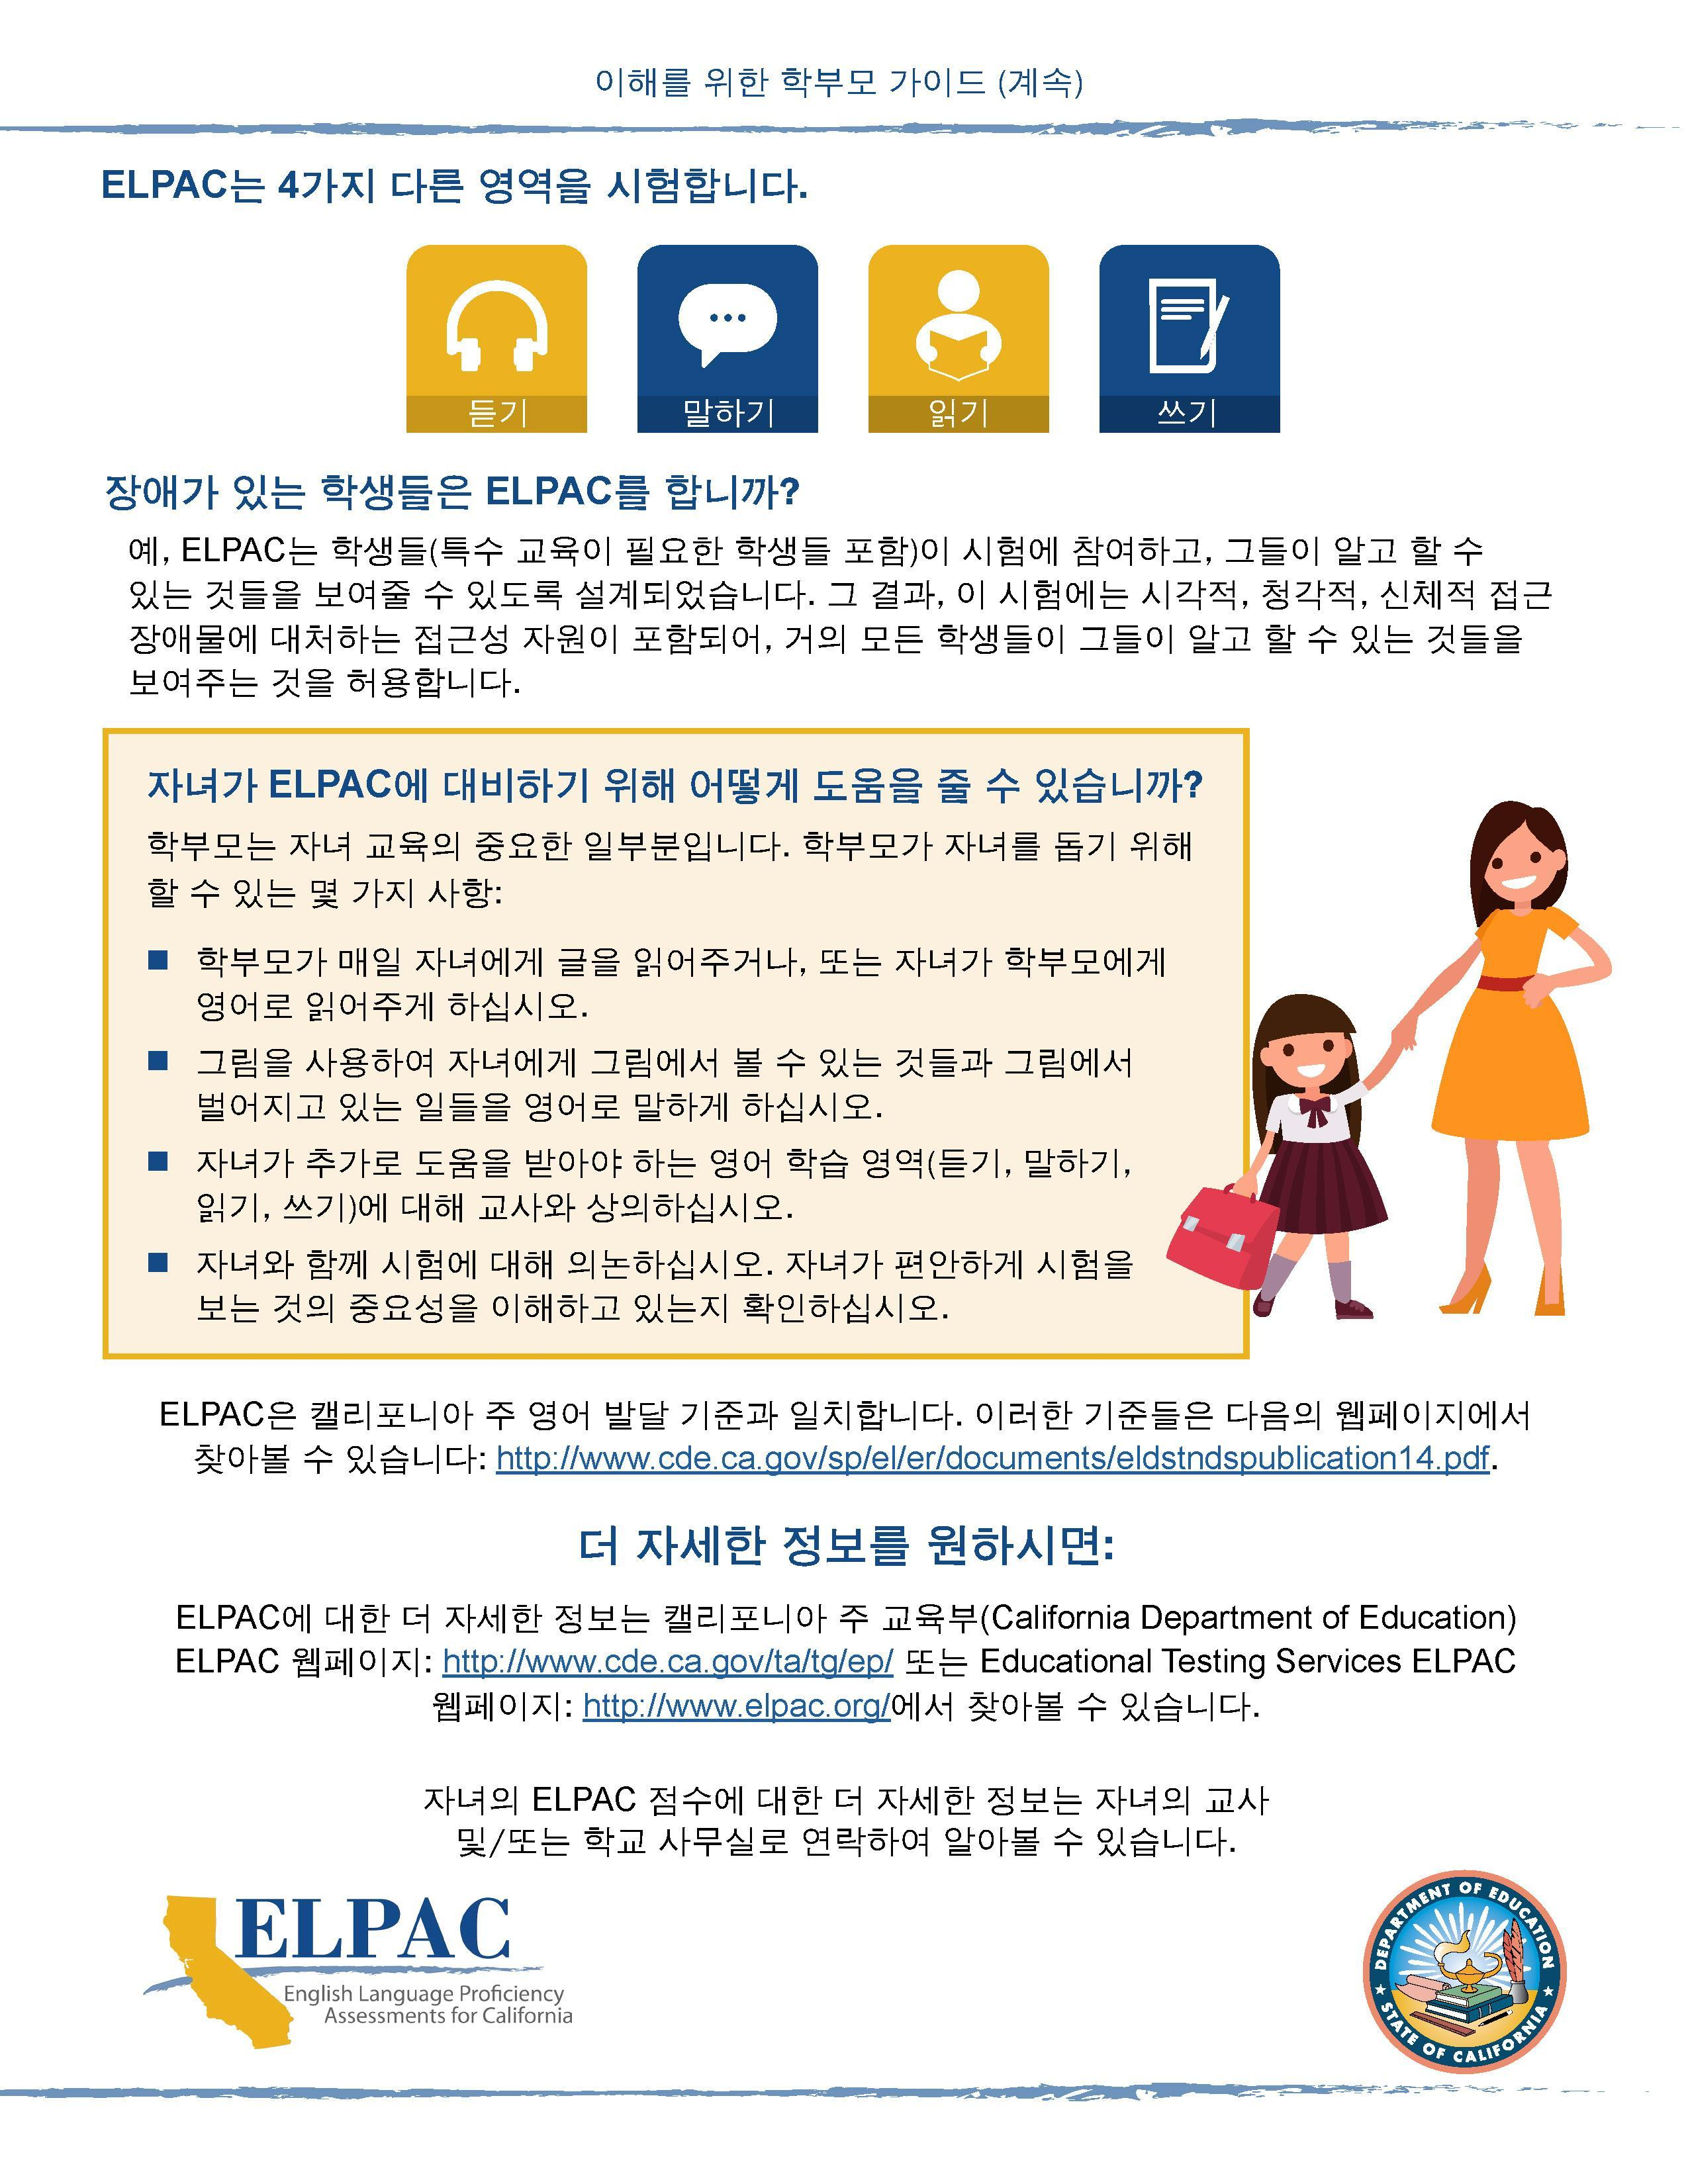 ELPAC Parent Guide Korean Page 2